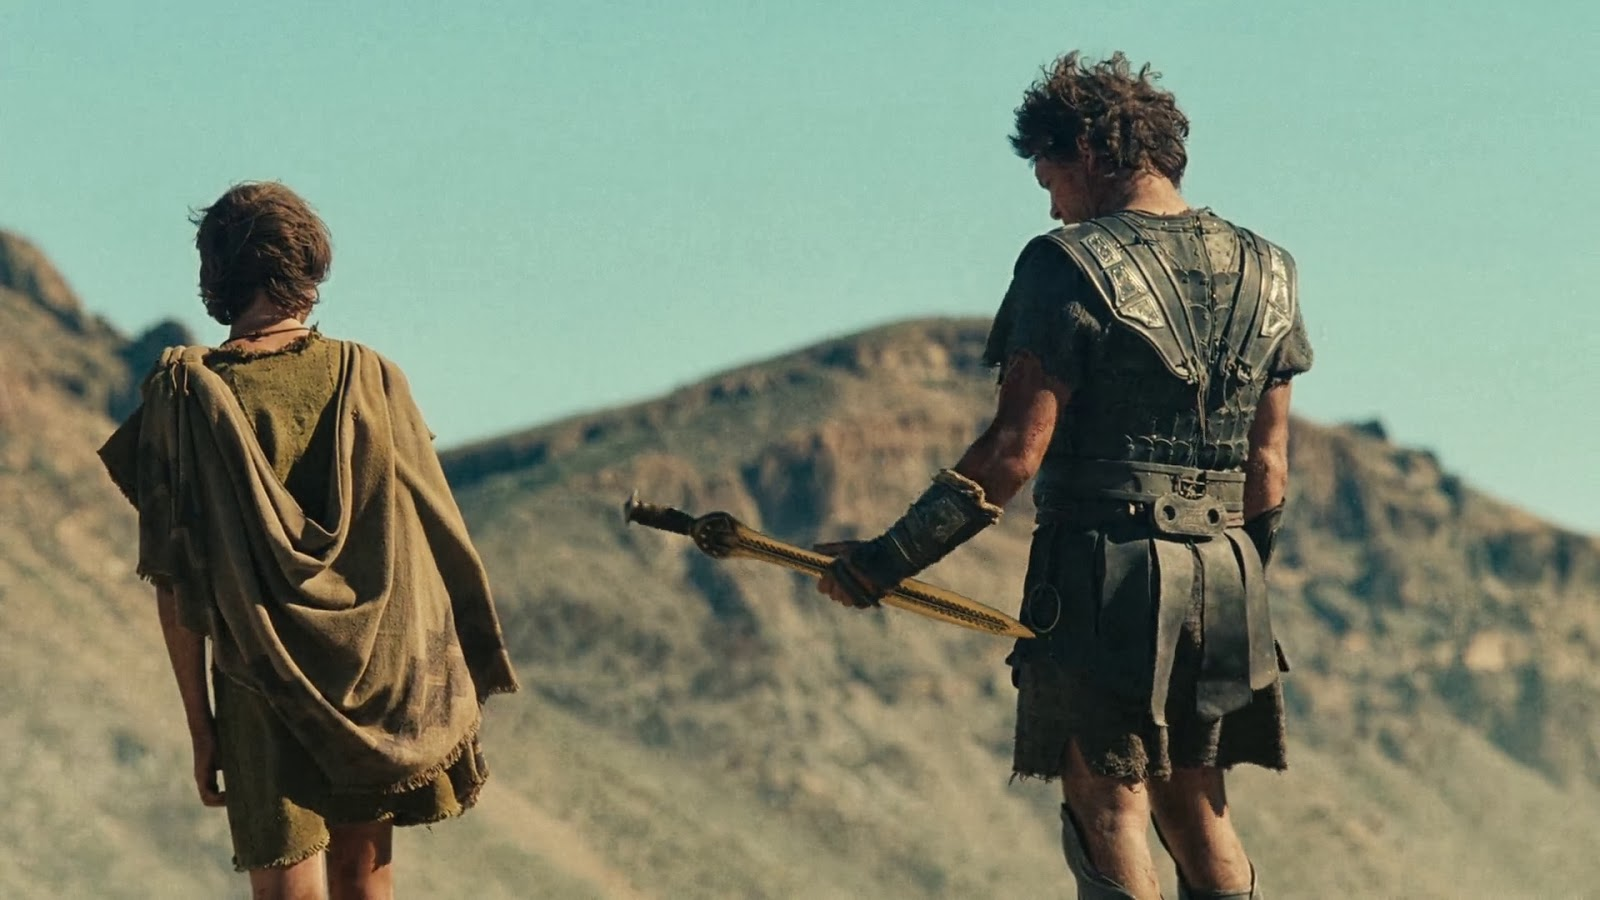 Wrath of the Titans (2012) S3 s Wrath of the Titans (2012)